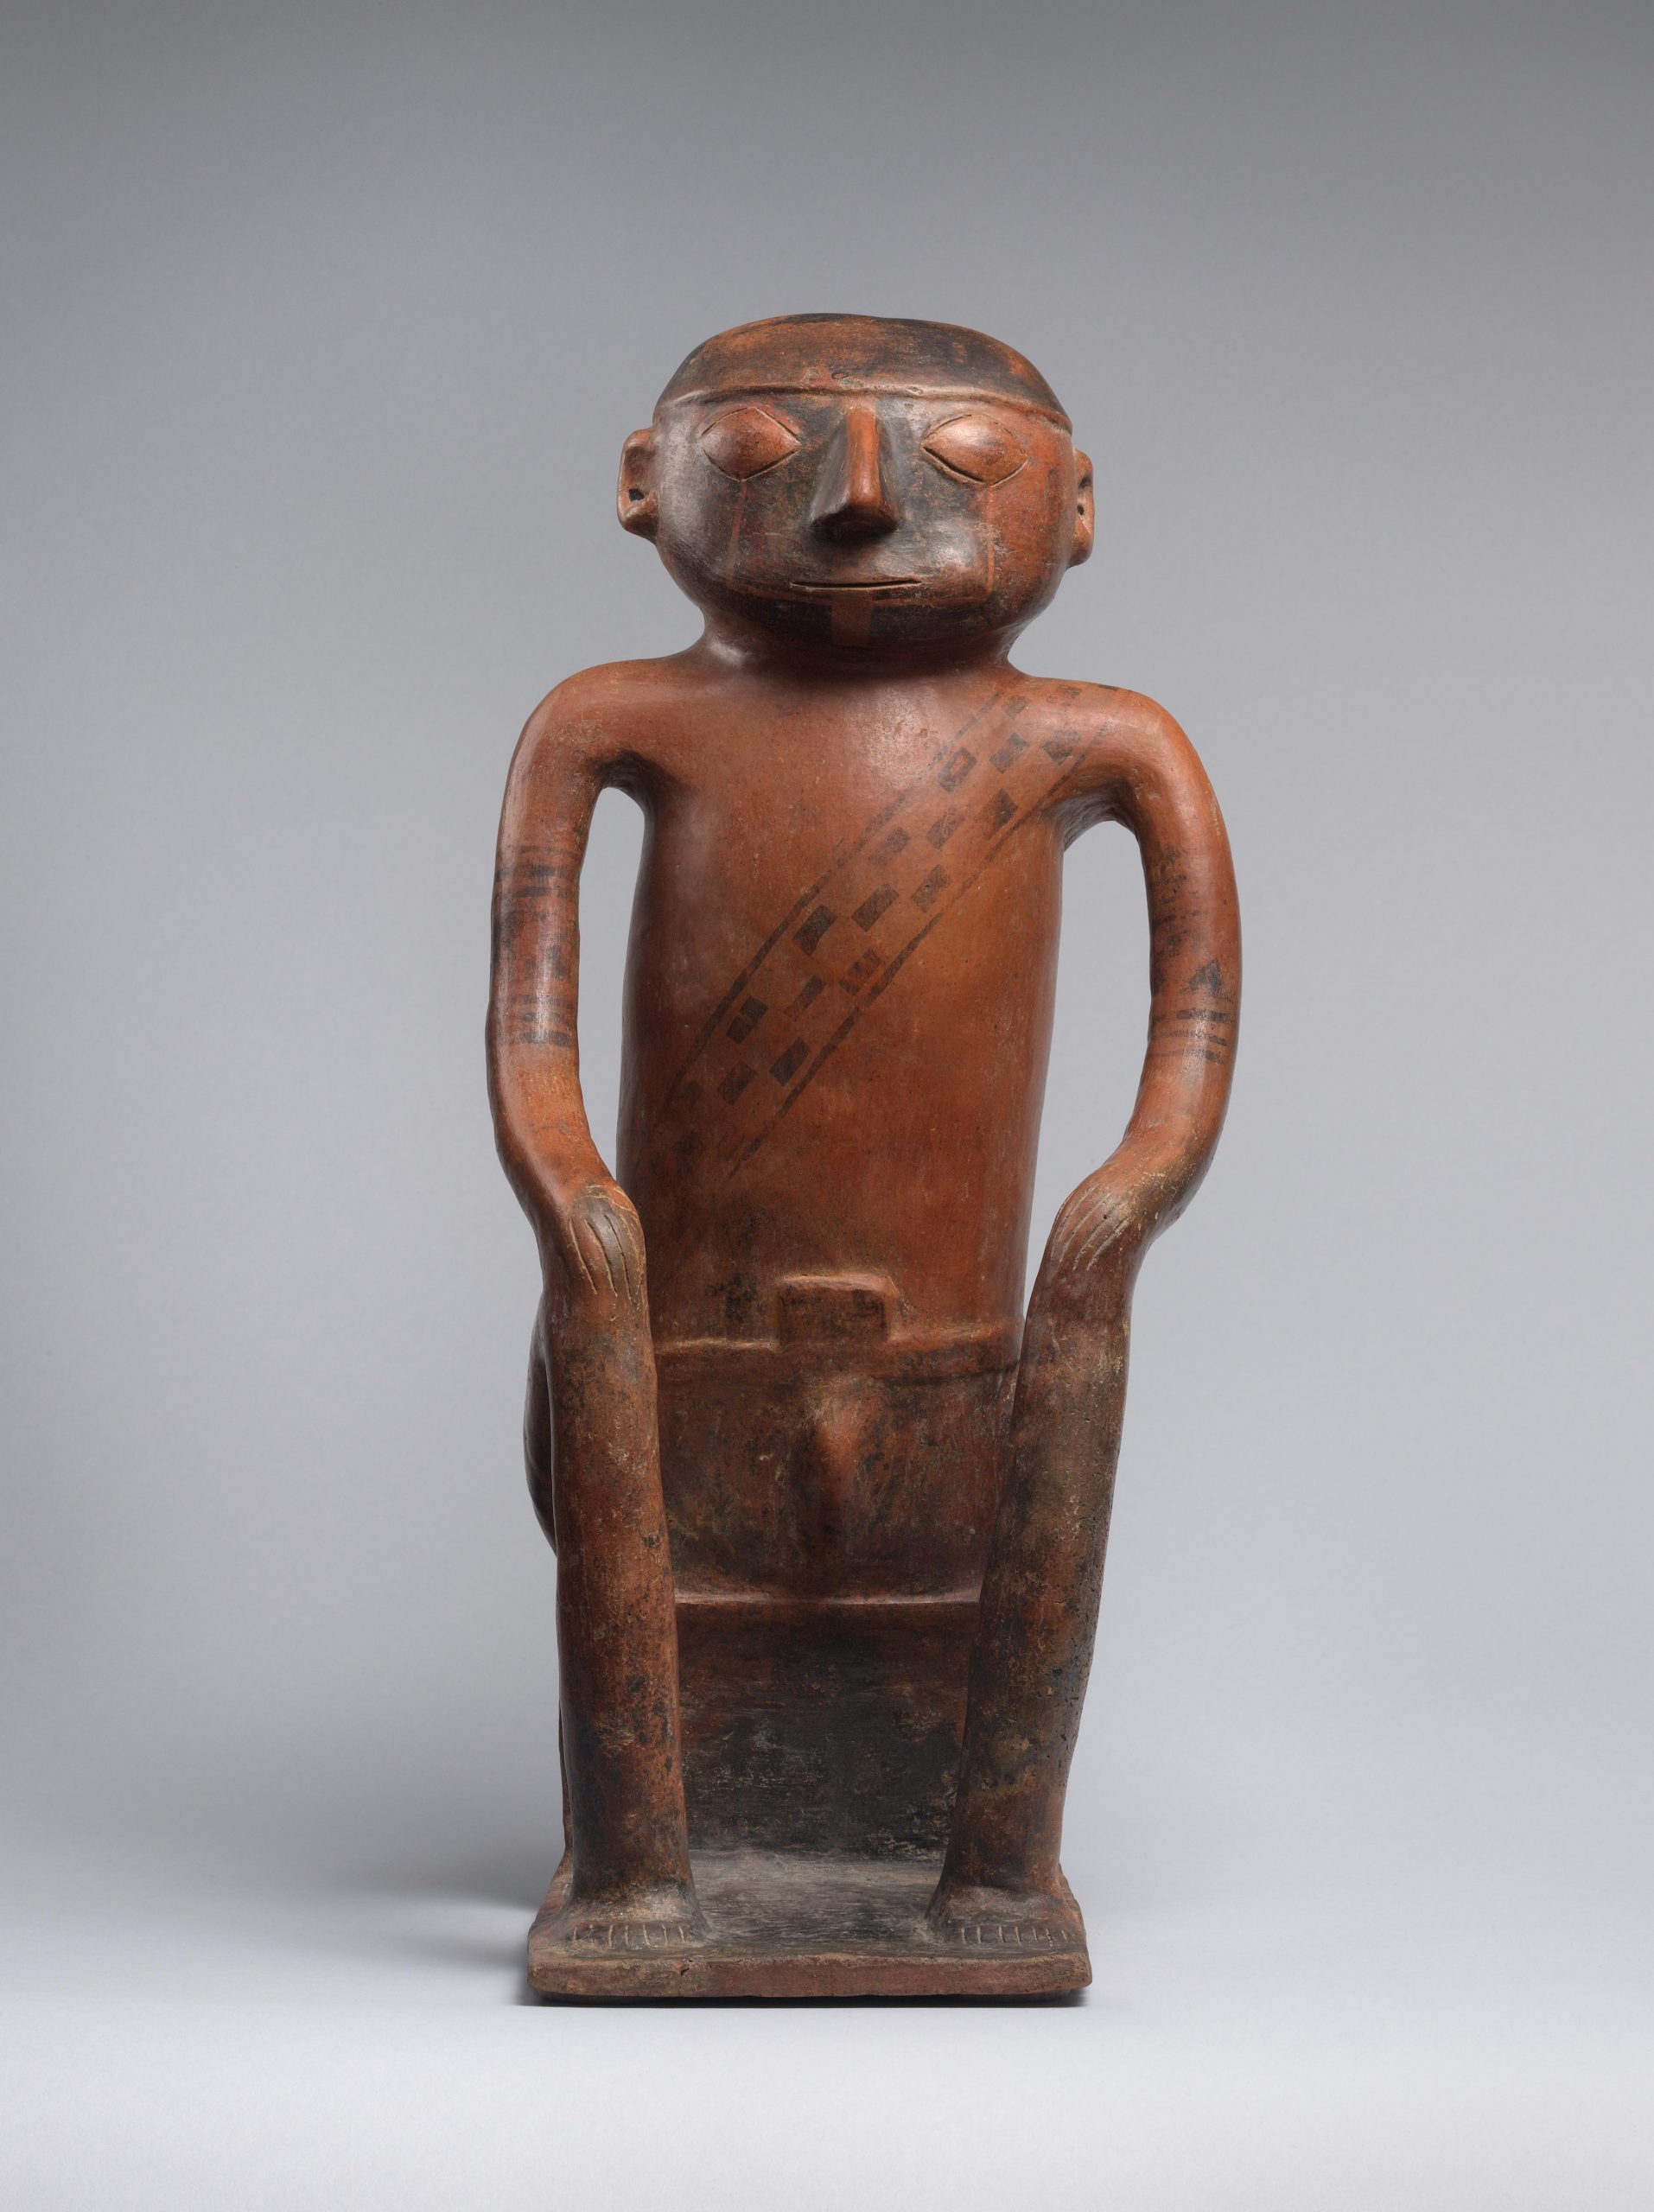 A seated male figure with a painted face, enlarged cheeks, and a woven band across the chest.